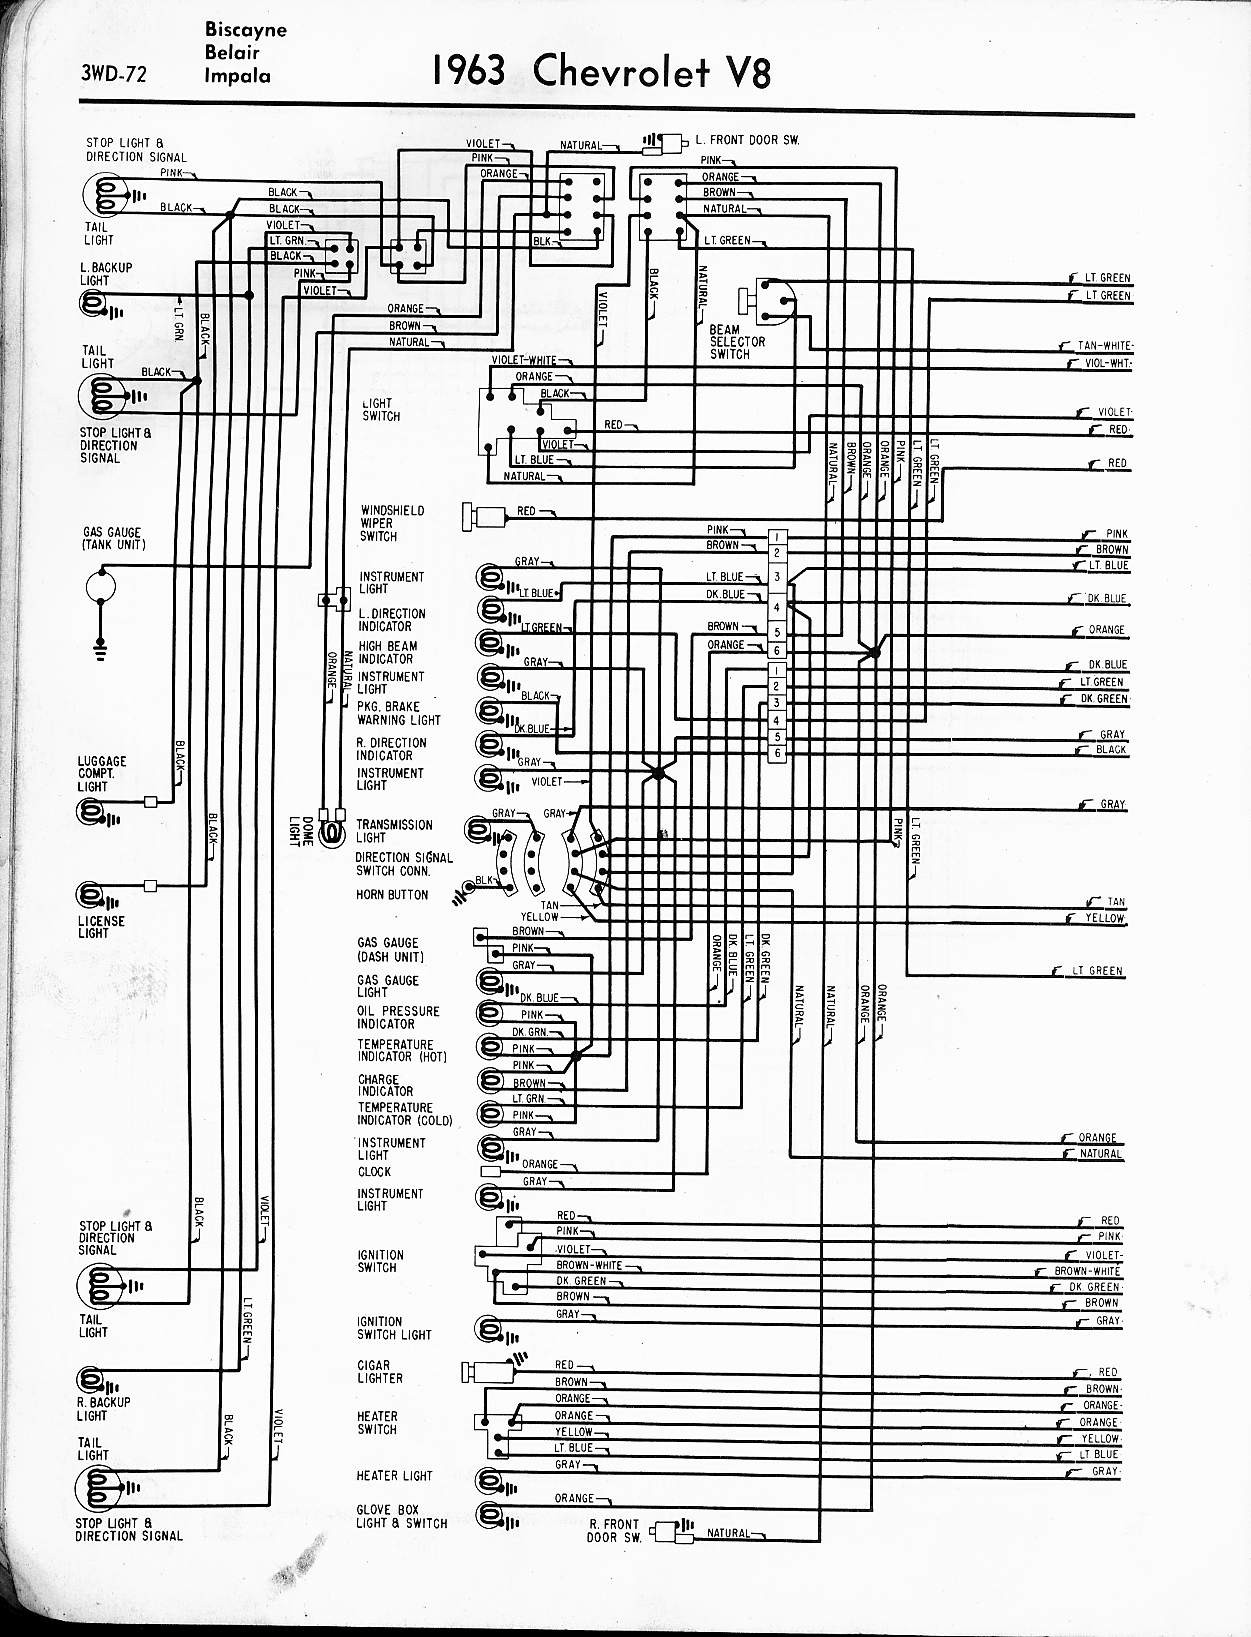 wiring diagram 65c 10 best wiring library House Wiring Circuits Diagram related with wiring diagram 65c 10 truck